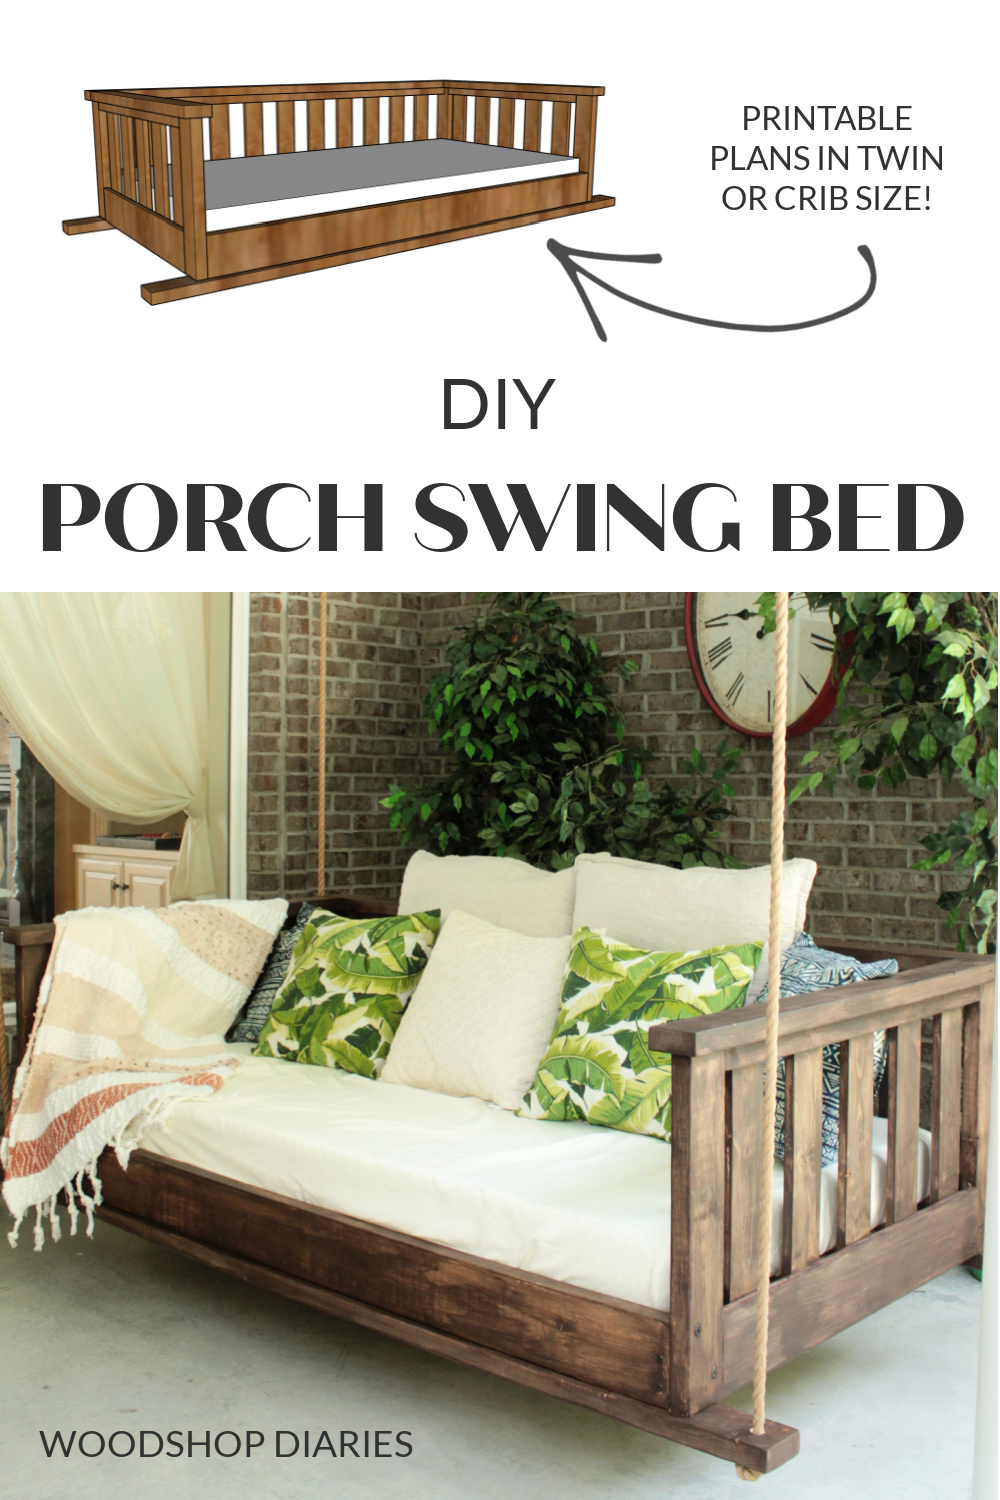 """Pinterest collage showing overall computer diagram of DIY porch swing bed project at top and completed swing photographed on brick porch at bottom with text """"DIY Porch Swing Bed"""""""